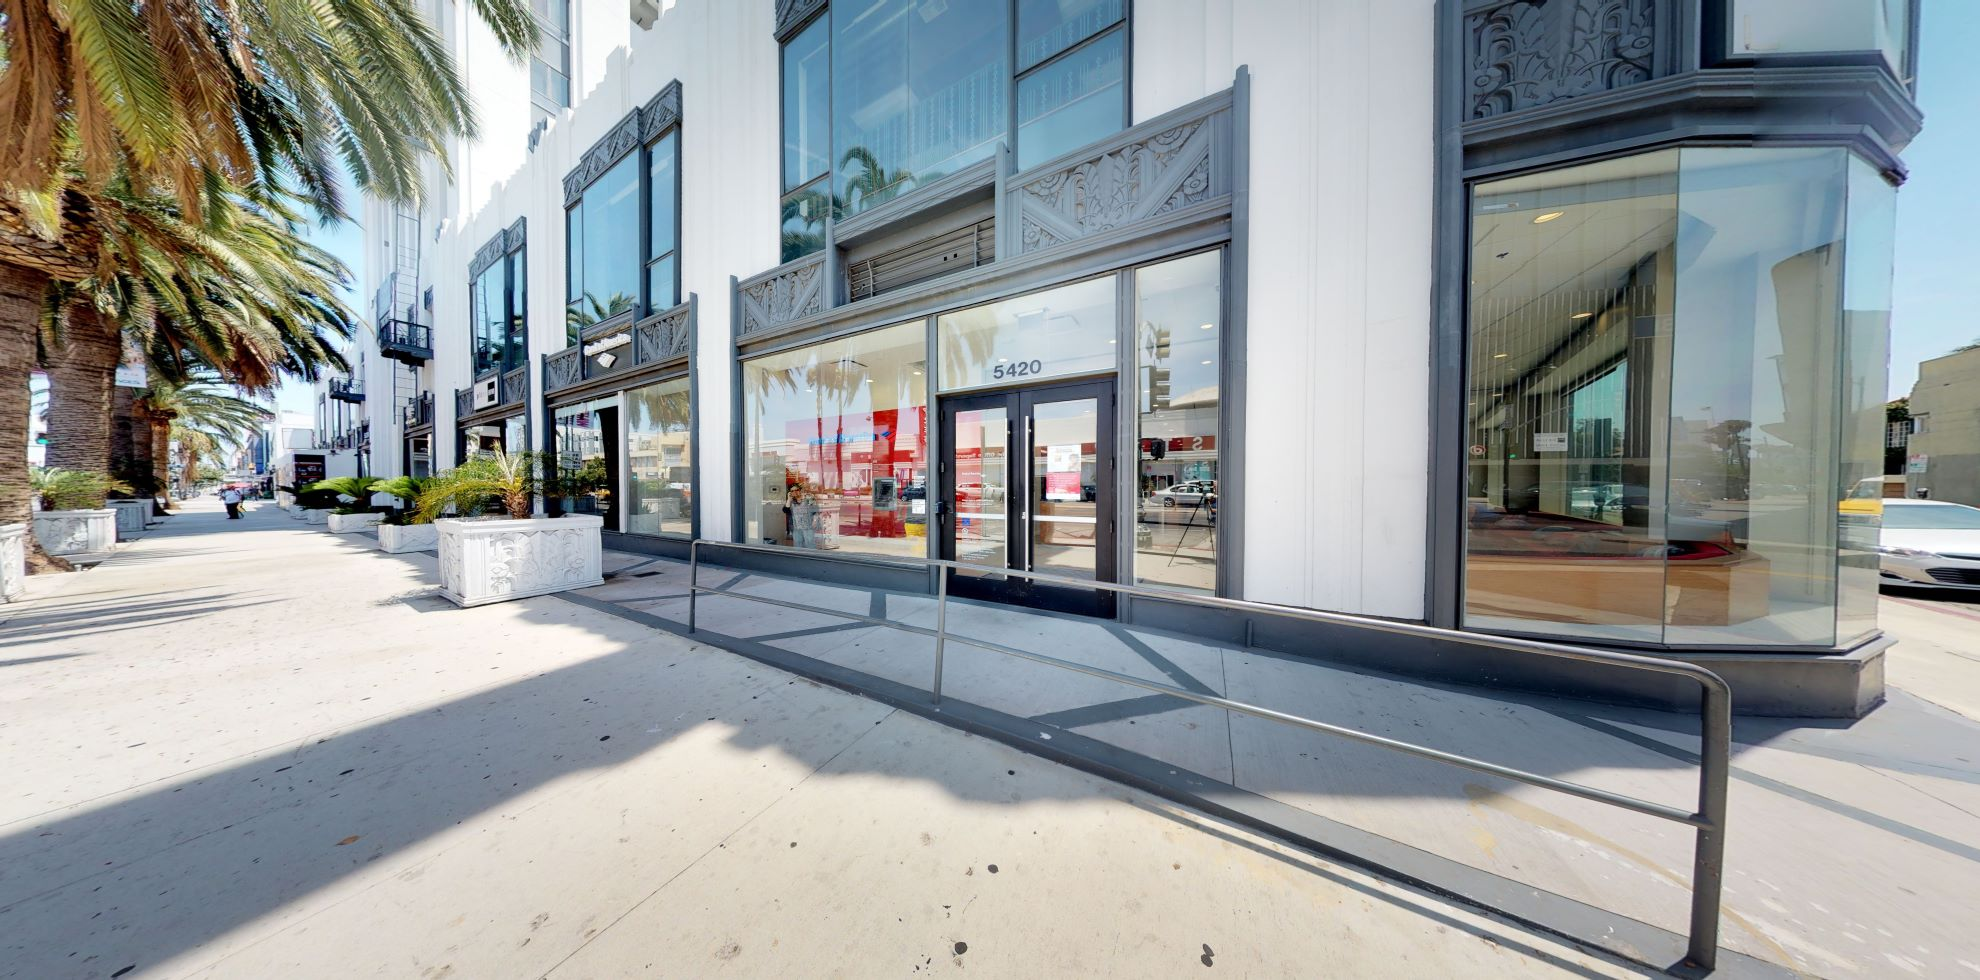 Bank of America financial center with walk-up ATM | 5420 Wilshire Blvd, Los Angeles, CA 90036